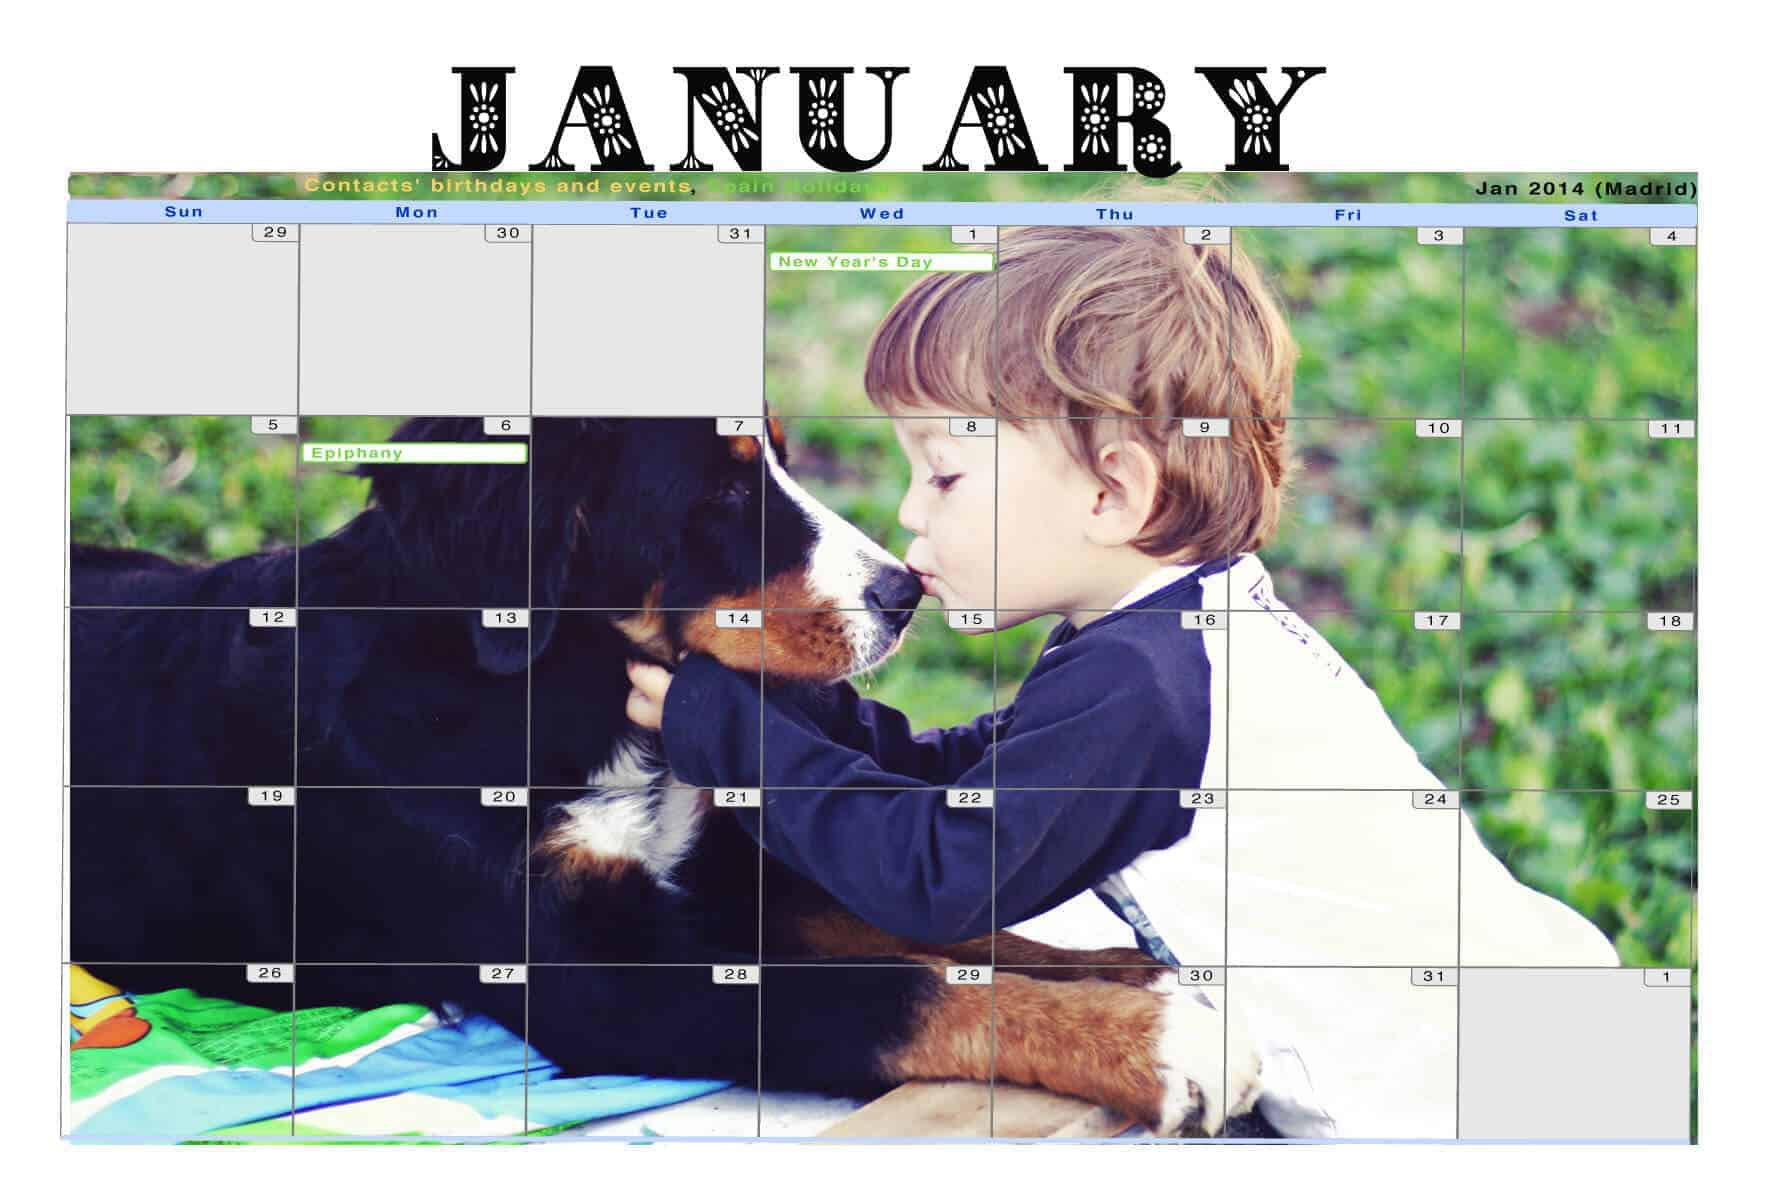 a January Google calendar with a background image of a boy kissing a dog.